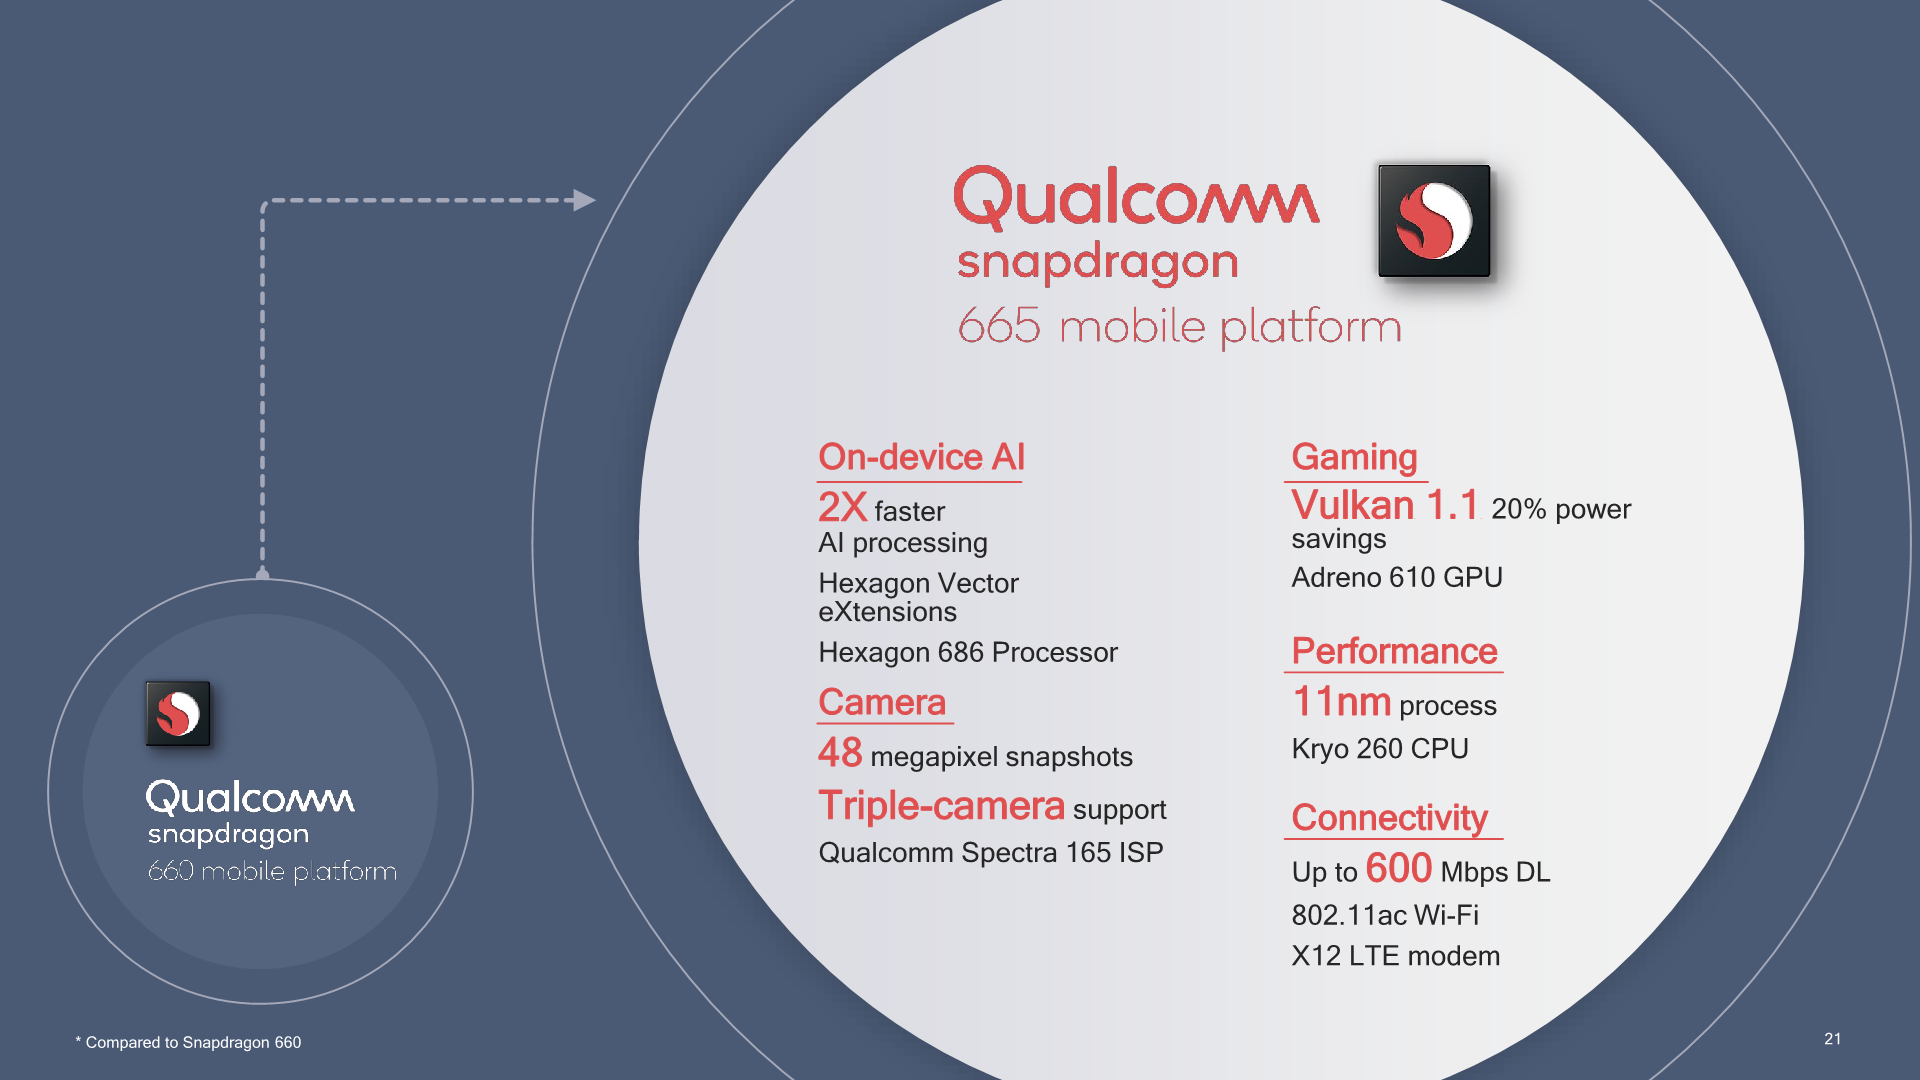 Qualcomm's Snapdragon 730G processor was built for kick-ass mobile gaming